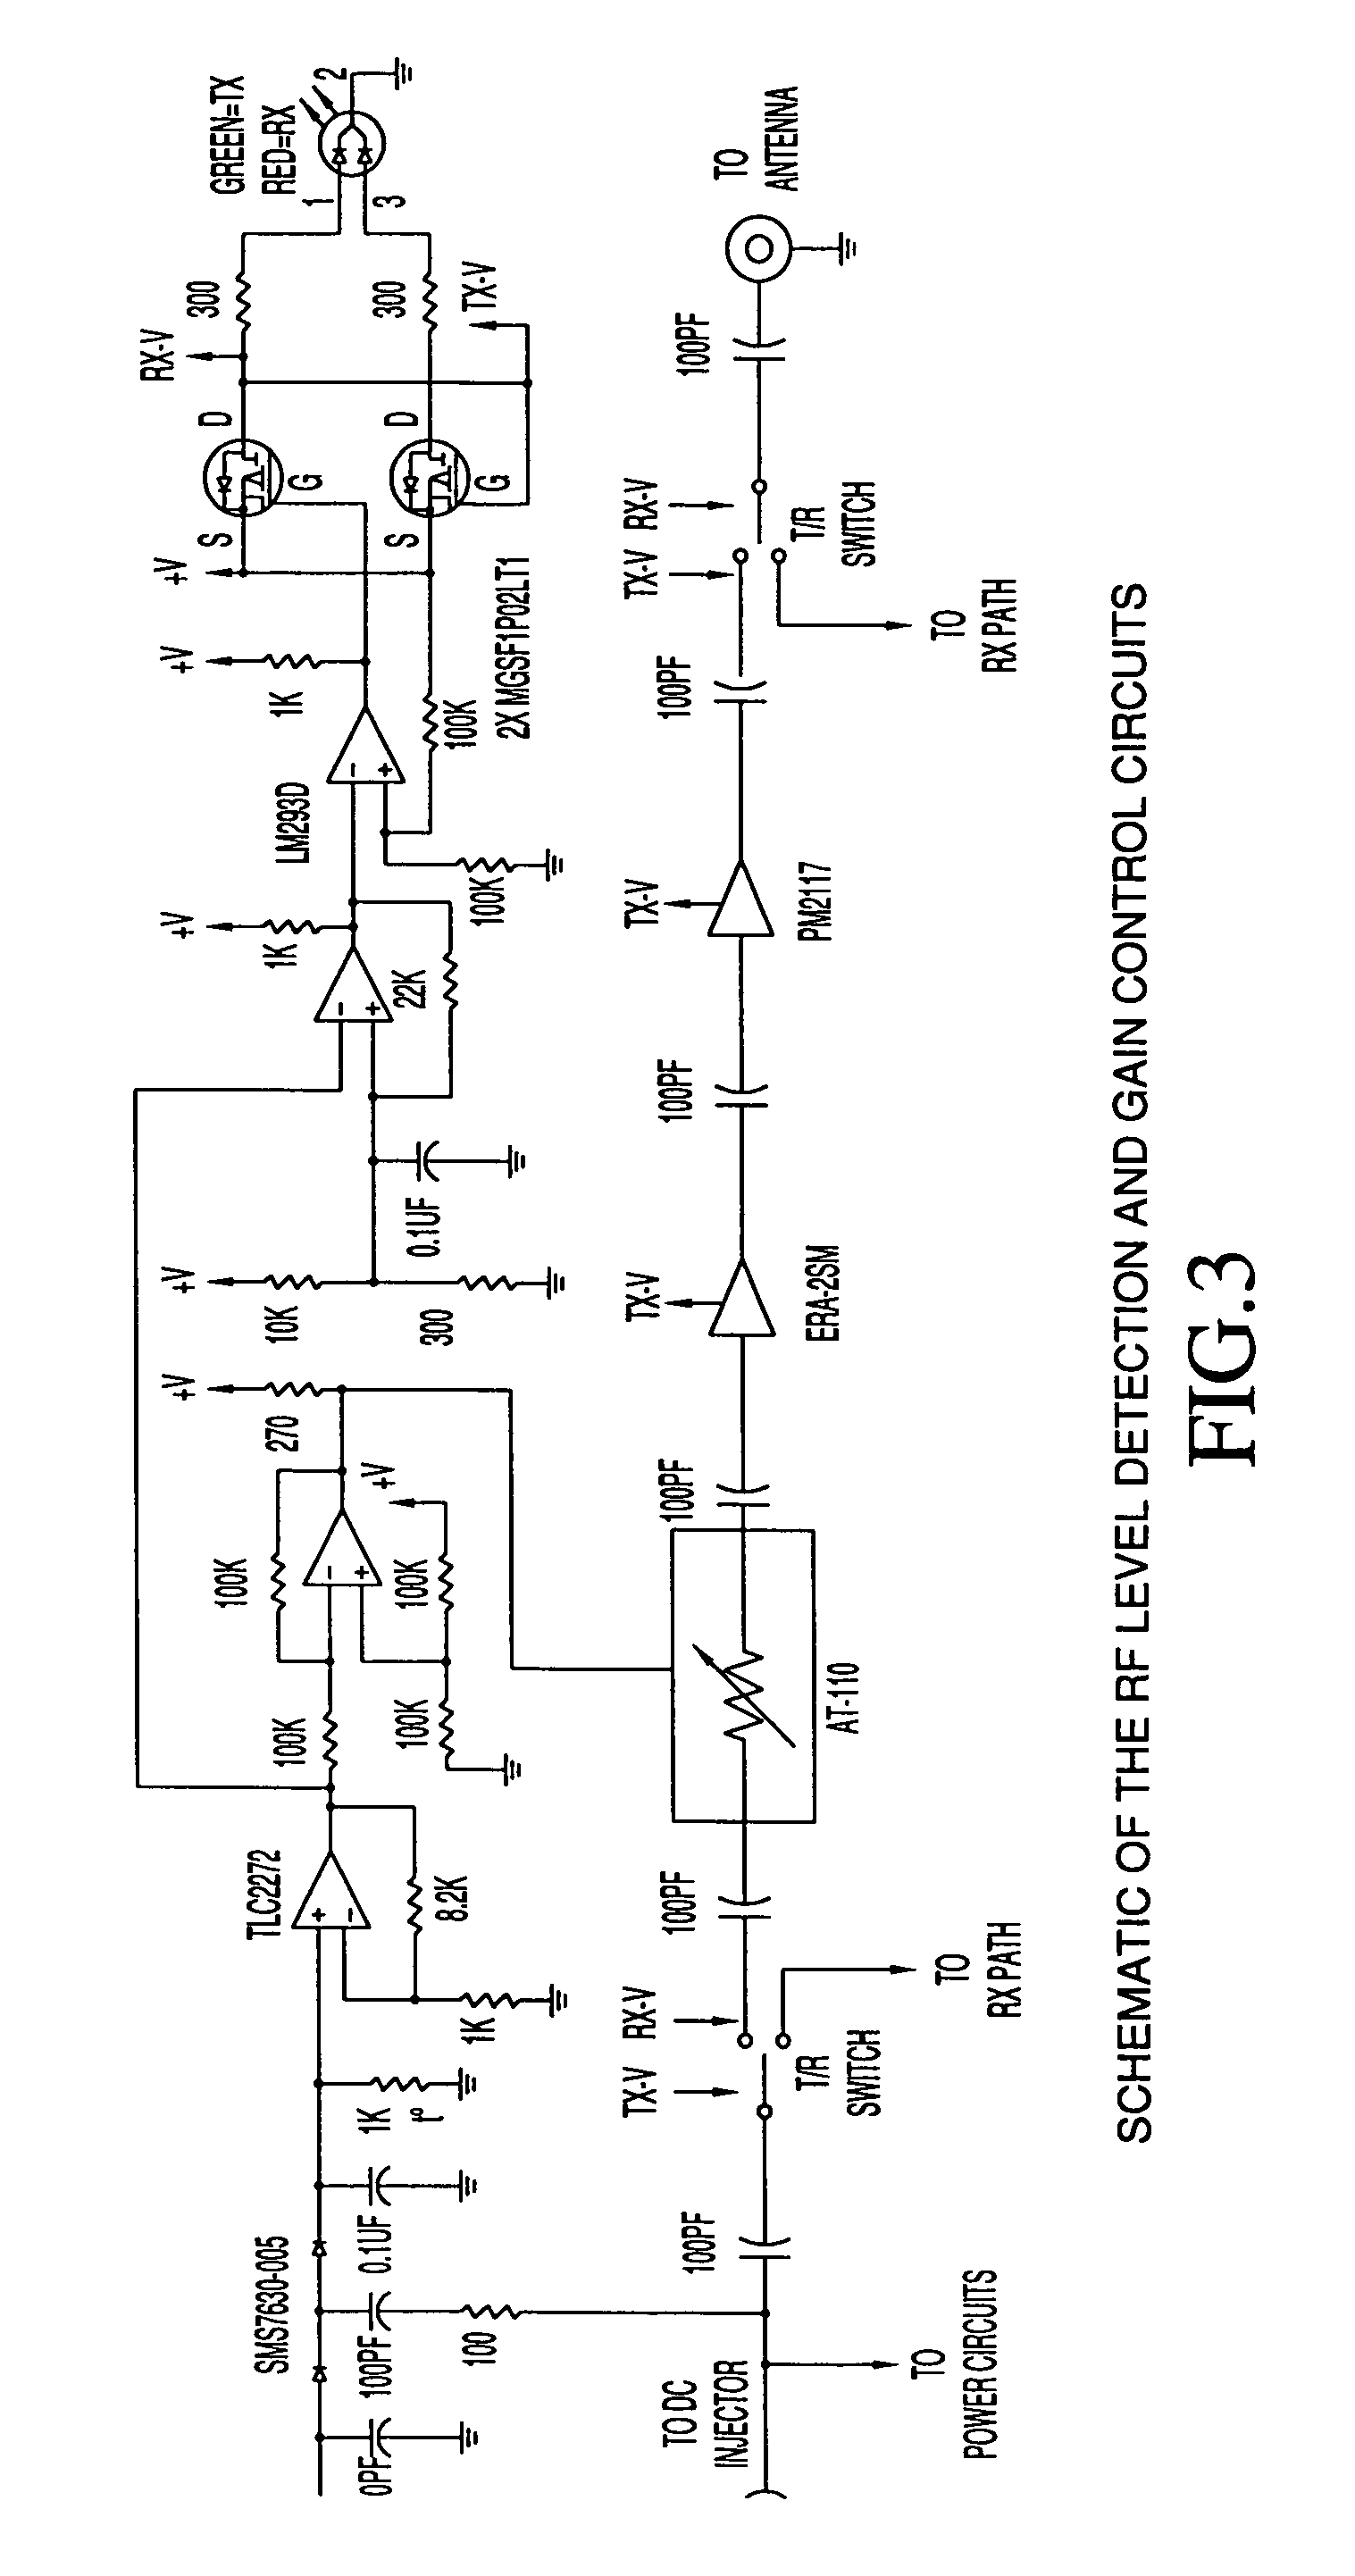 Us7158761 Smart Amplifier For Time Division Duplex Antenna Power Injector Schematic Patent Drawing